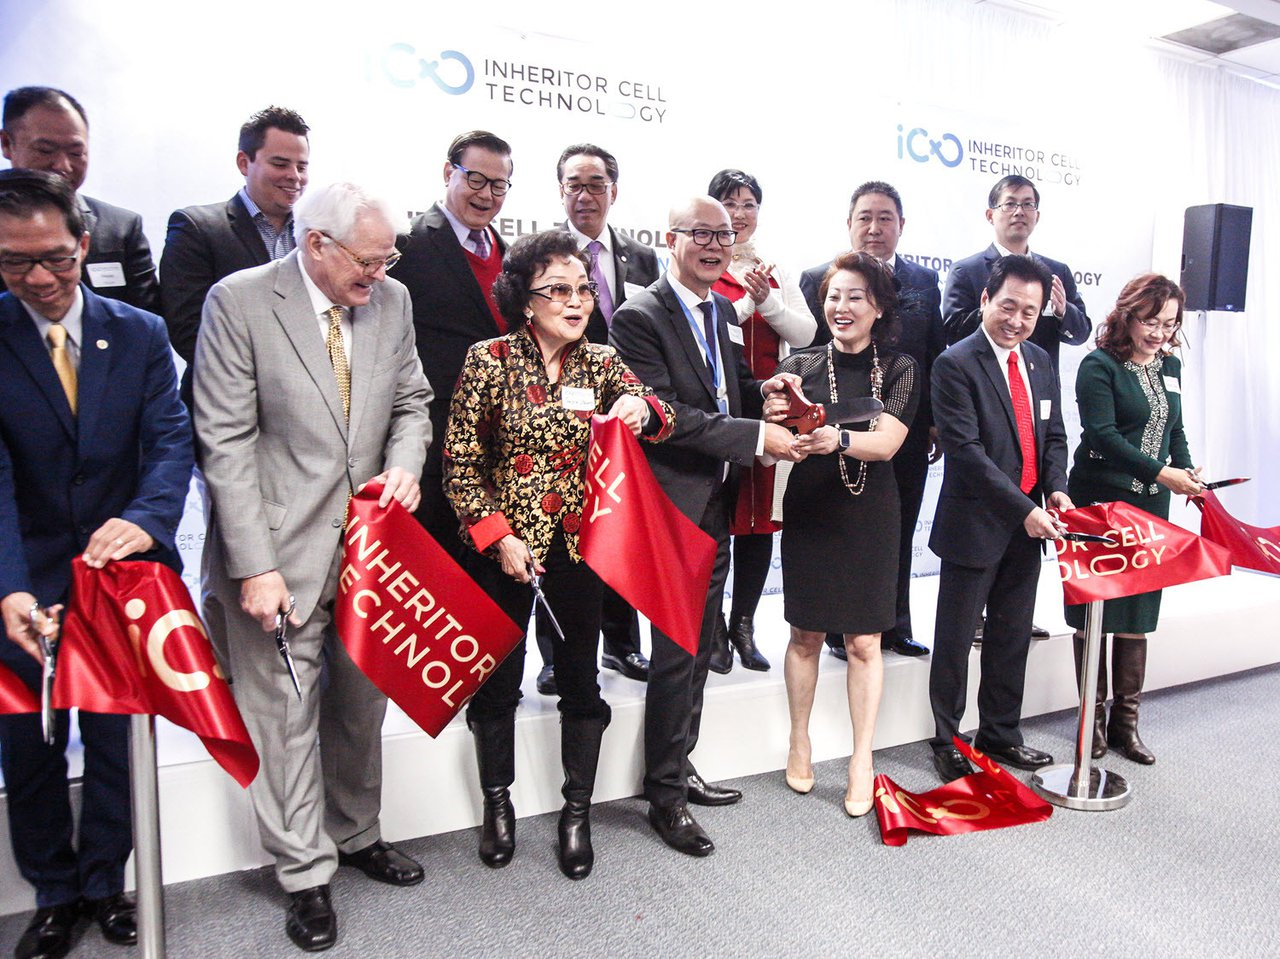 Grand Opening for ICT USA photo Ribbon Cutting Ceremony for ICT.jpg